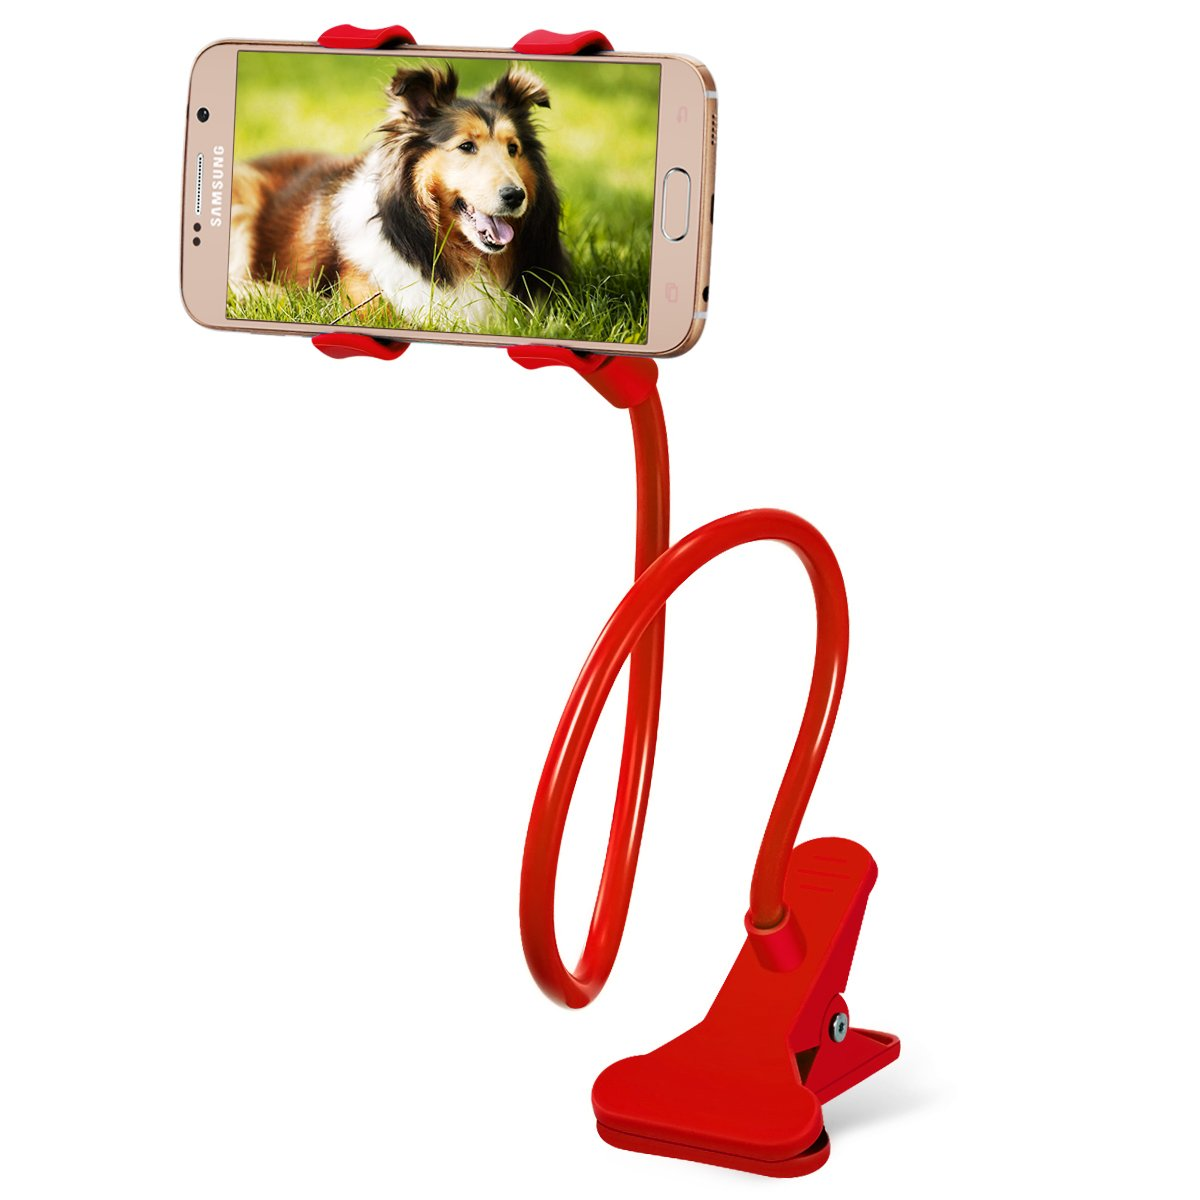 Breett Cell Phone Holder, Universal Cell Phone Clip Holder Lazy Bracket Flexible Long Arms for iPhone, GPS Devices, Fit on Desktop Bed Mobile Stand for Bedroom, Office, Bathroom, Kitchen